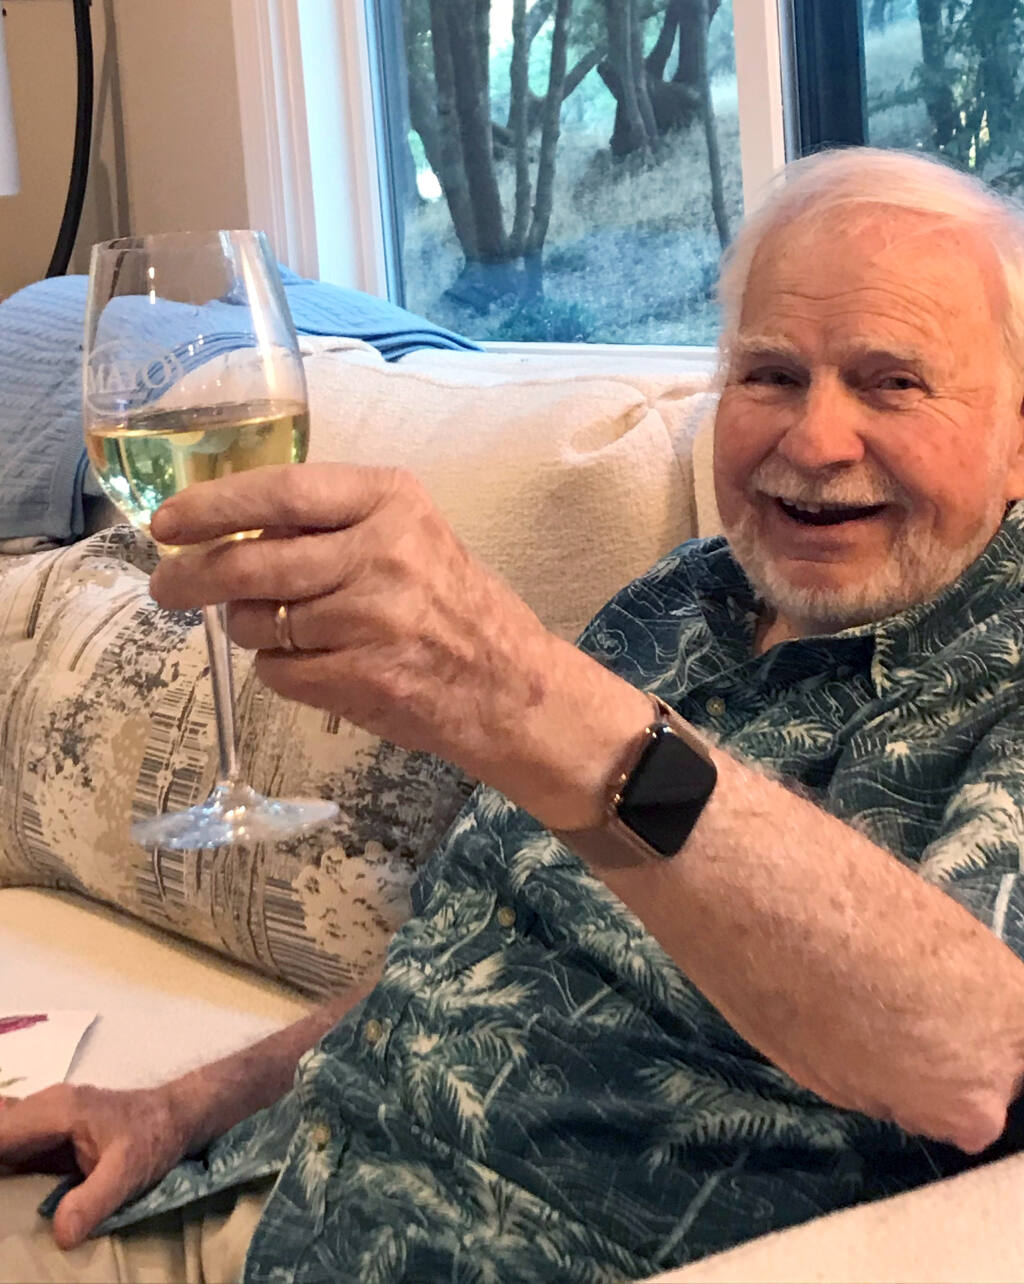 Henry Mayo enjoys a glass of his chardonnay at his Bennett Valley home in a recent family photo. Mayo died on Dec. 5, 2020. He was 86. (Submitted)